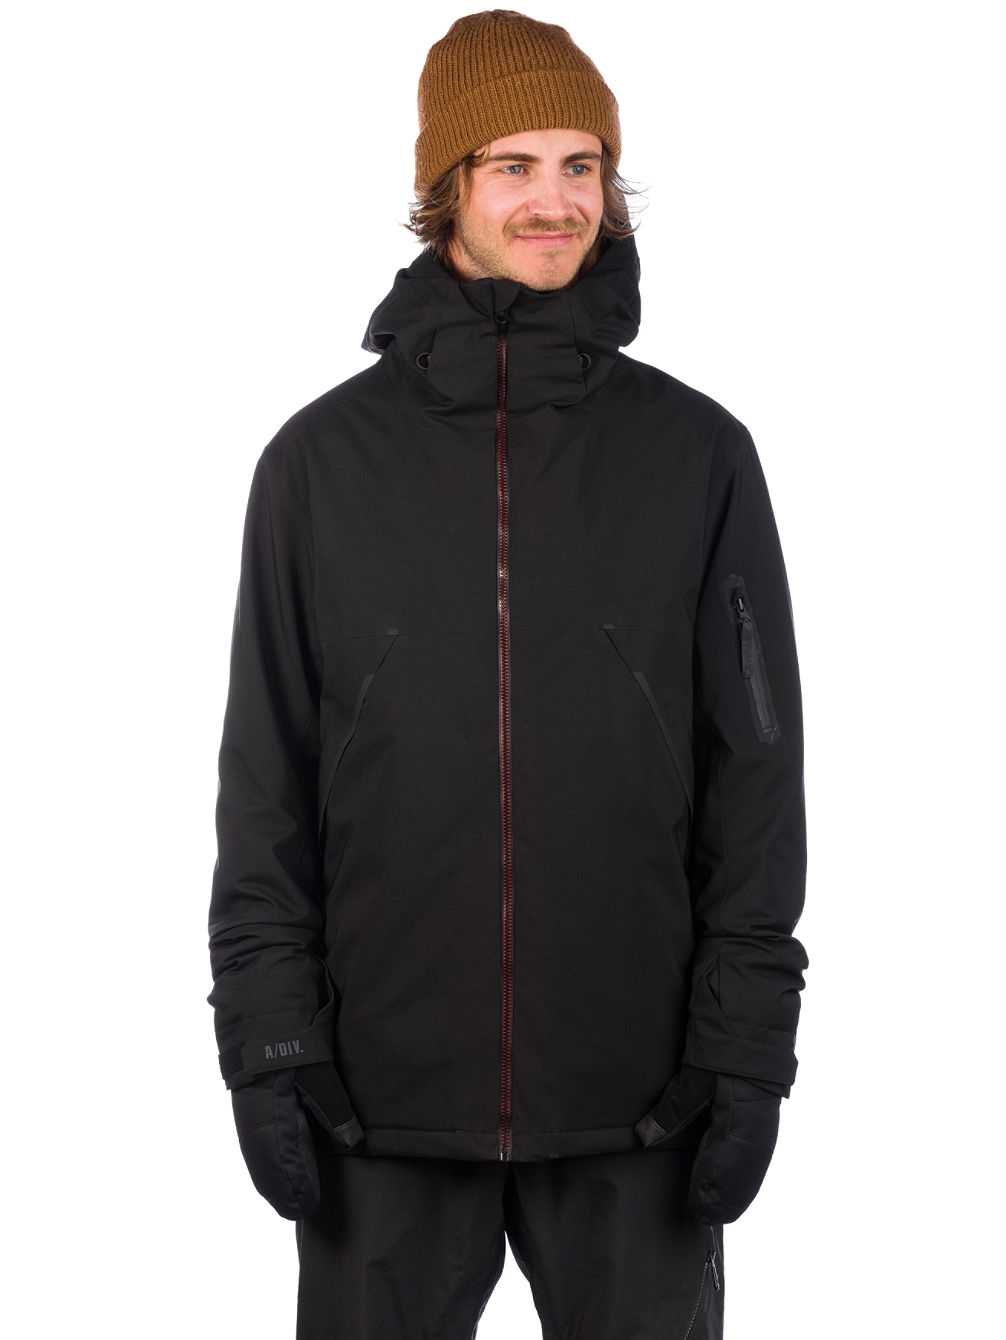 Expedition Veste